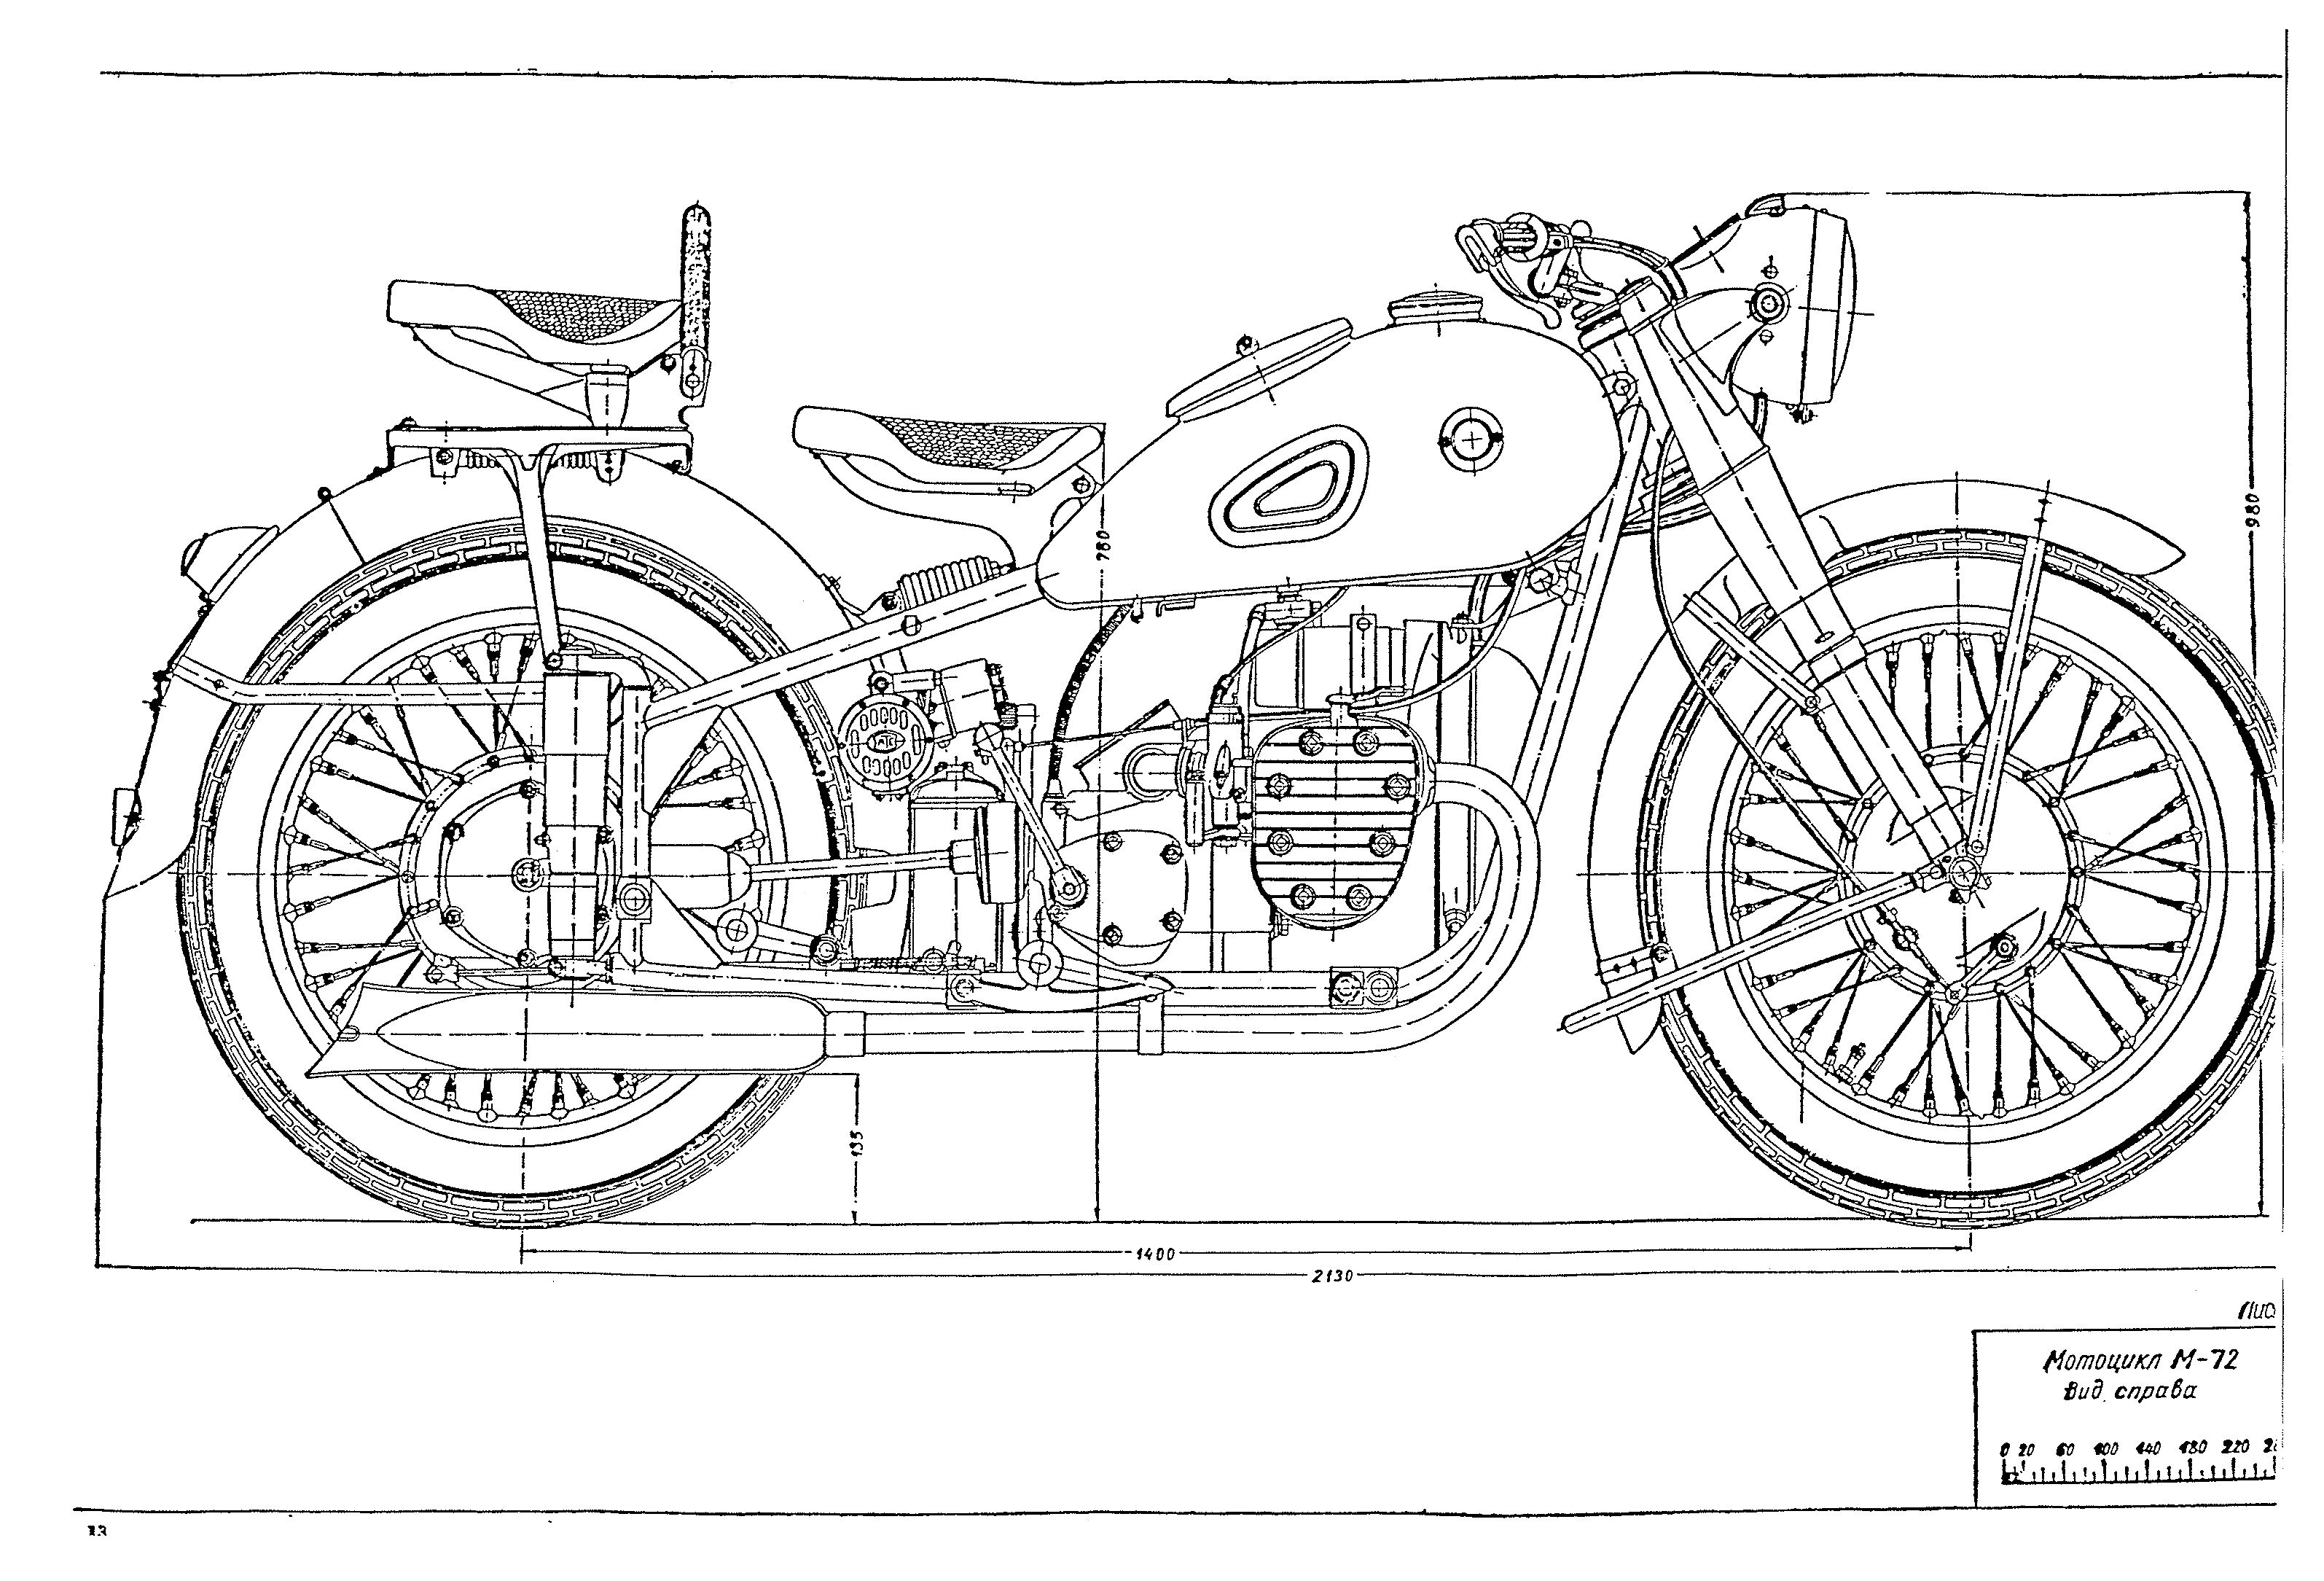 hight resolution of motorcycle blueprints google search